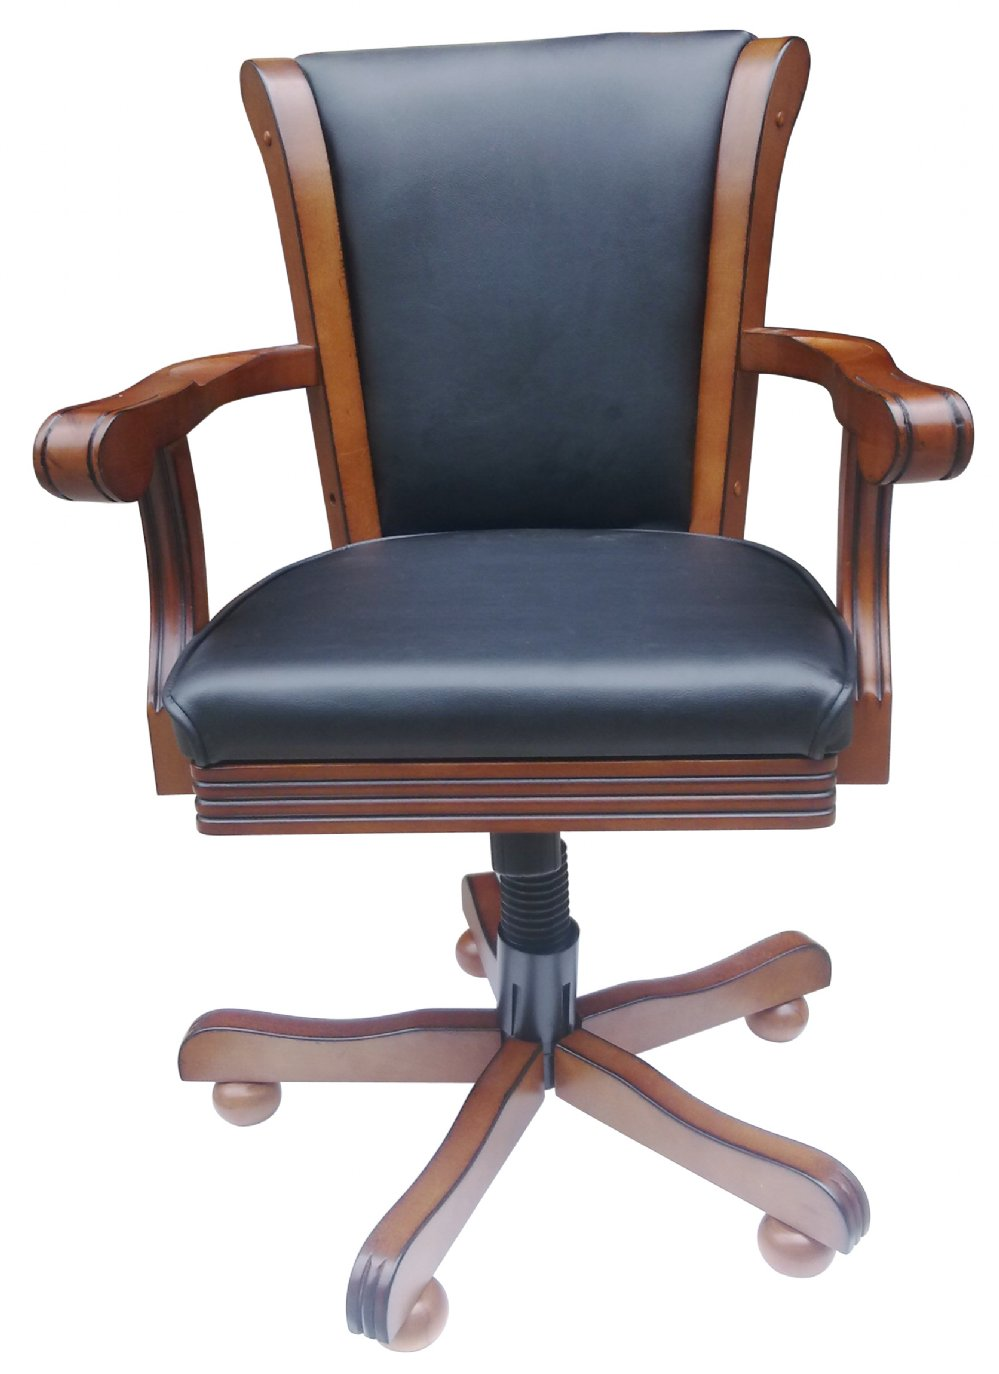 Chair Conversion Convert Your Caster Chairs Into Non Rolling